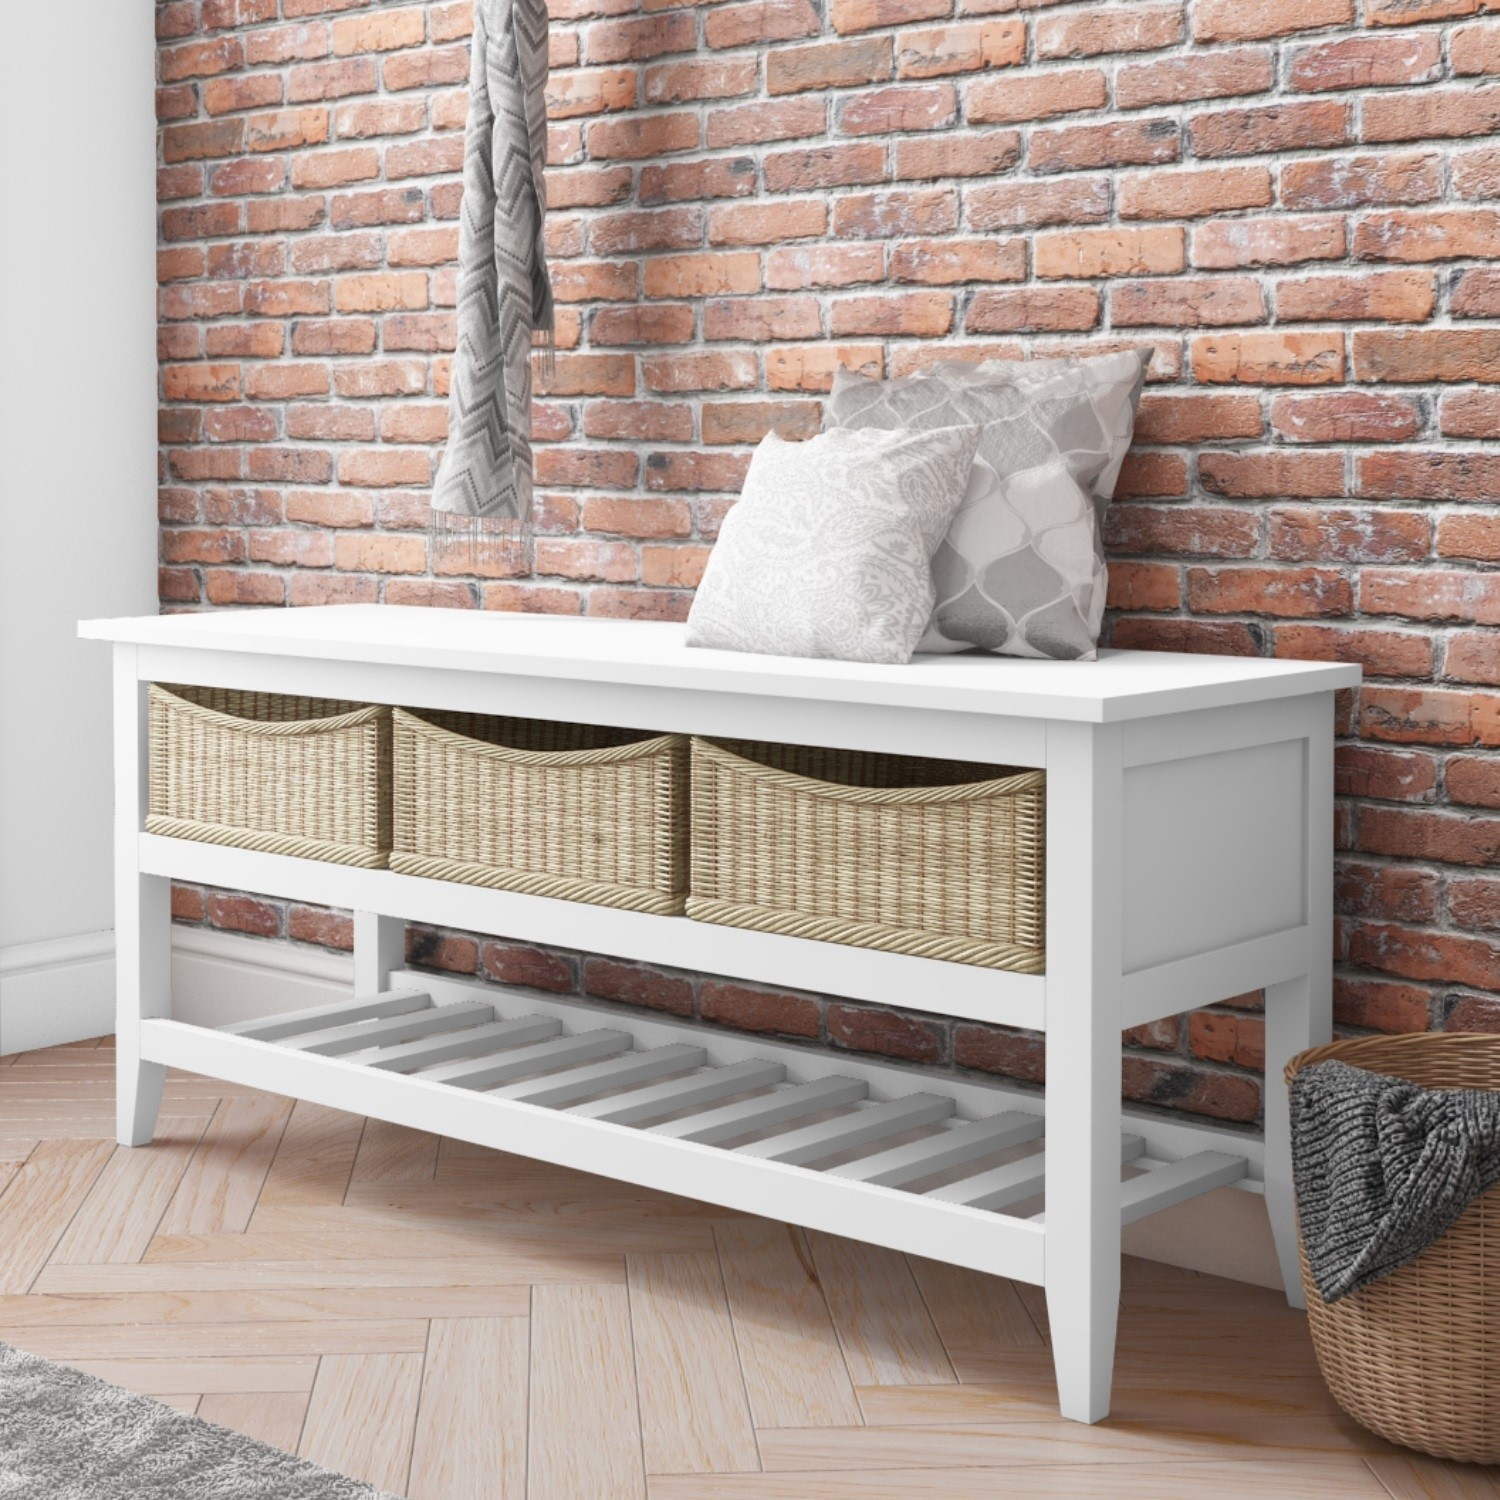 Astonishing Grade A1 White Wooden Shoe Rack Storage Bench With Wicker Baskets Elms Farmhouse Onthecornerstone Fun Painted Chair Ideas Images Onthecornerstoneorg